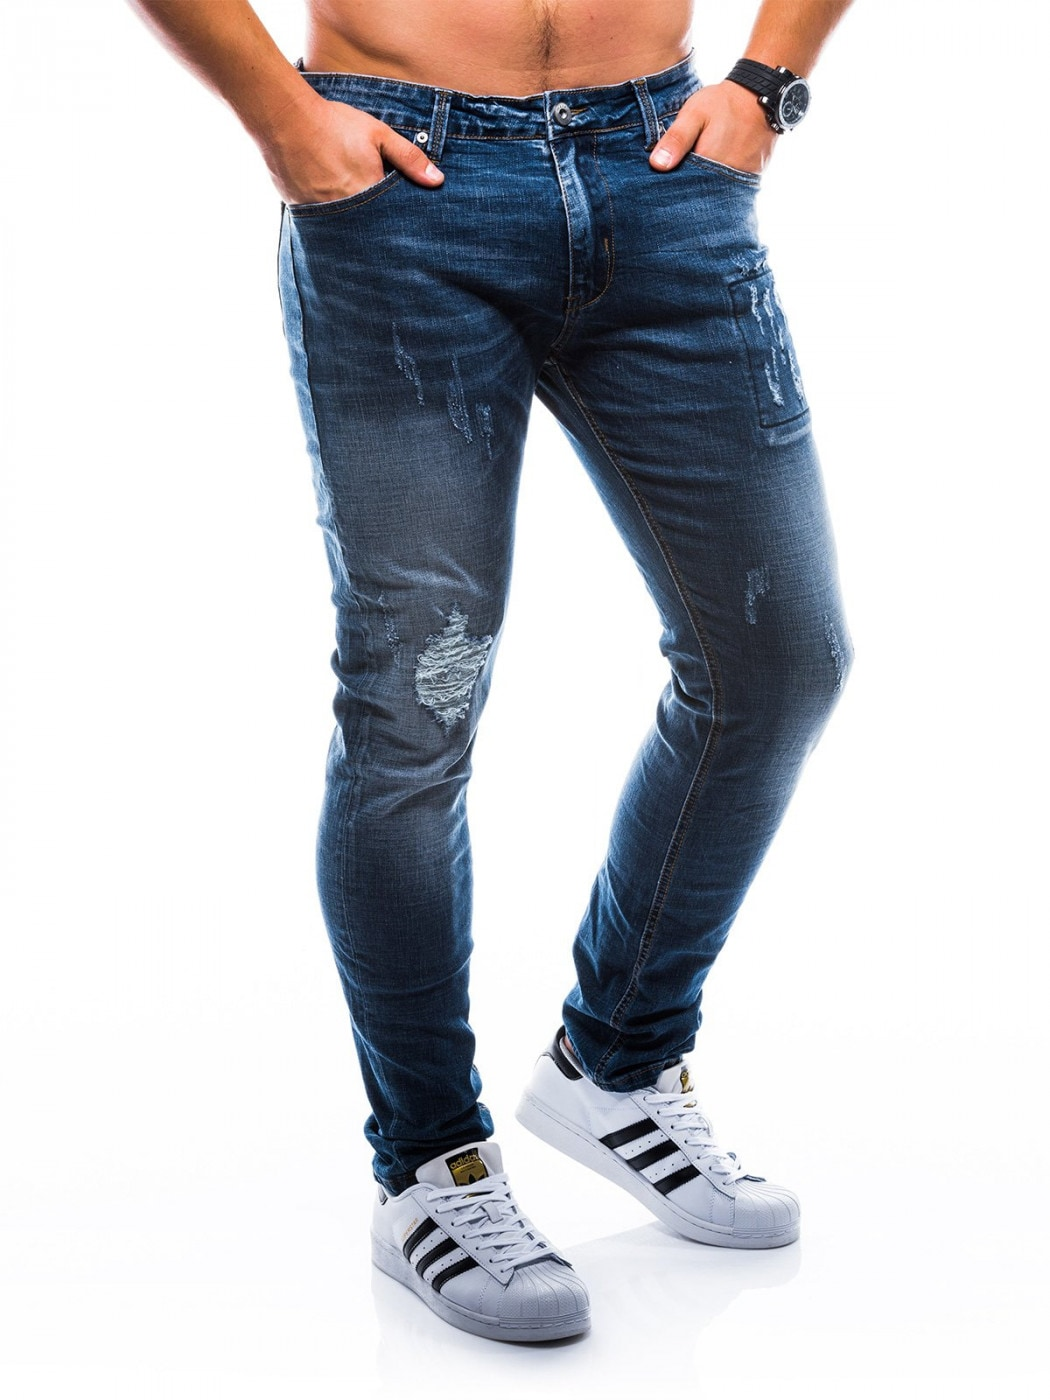 Ombre Clothing Men's jeans P768